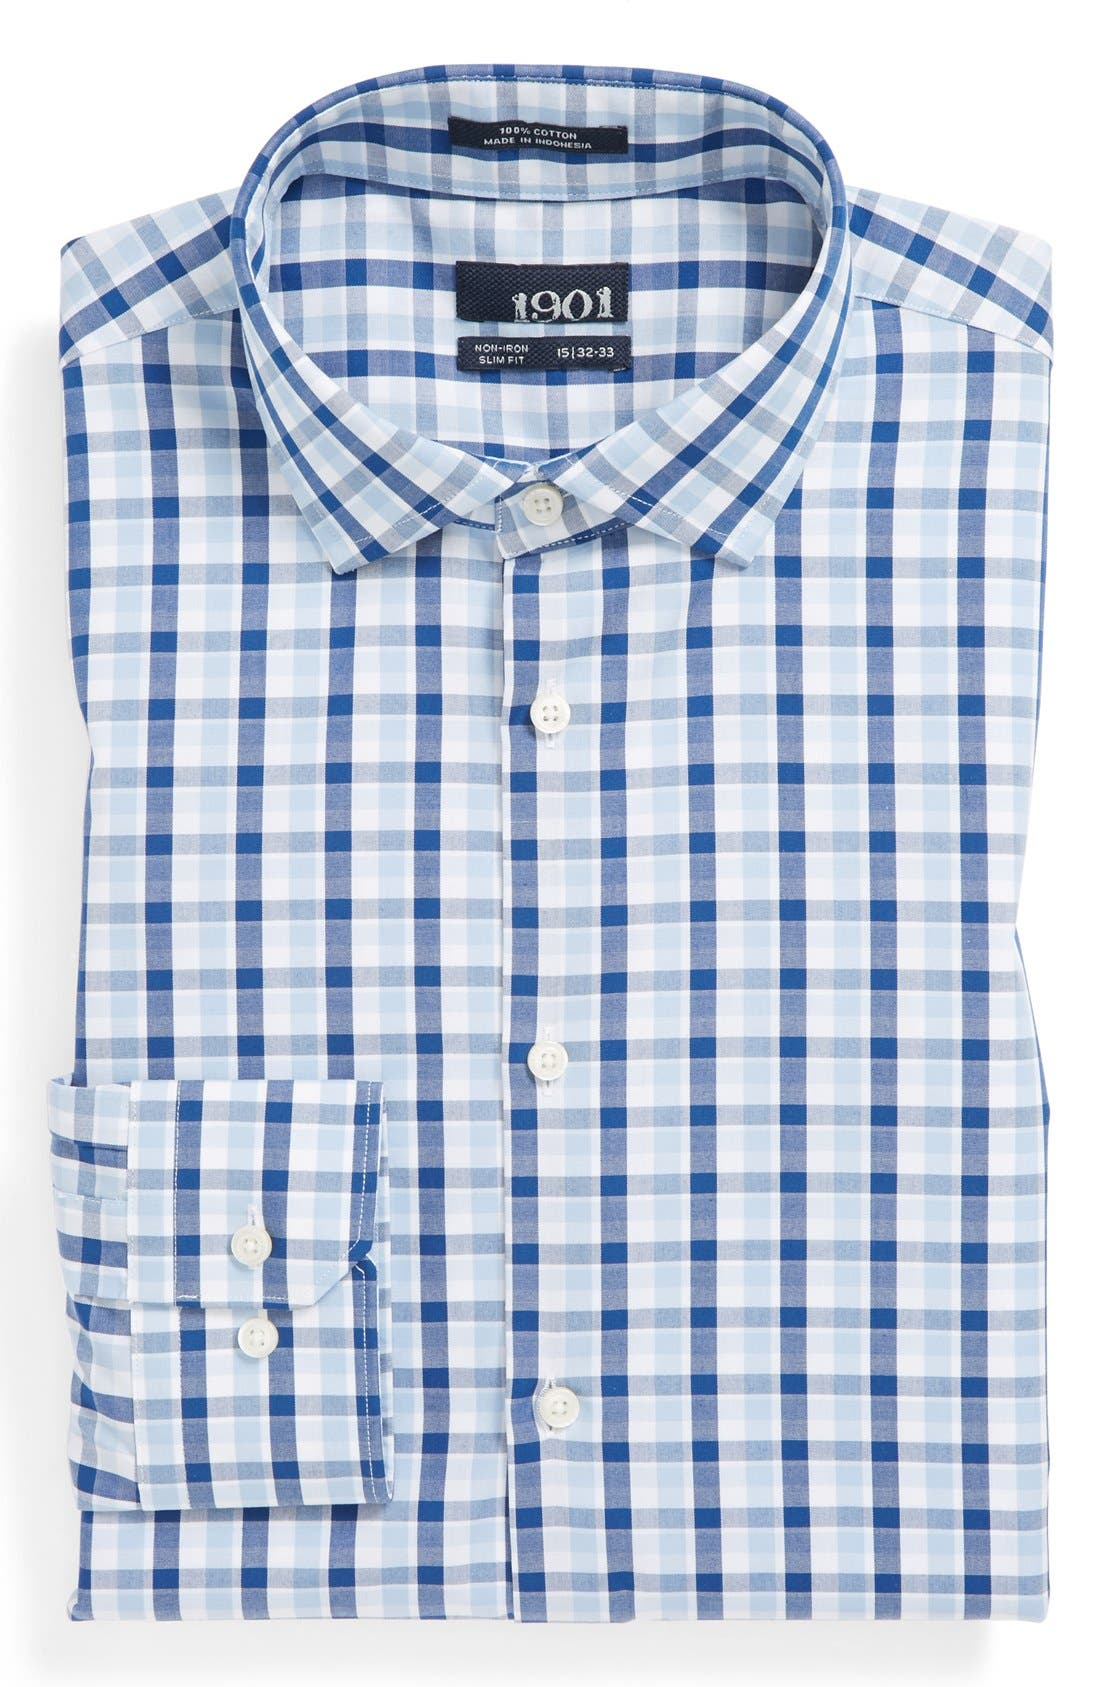 Alternate Image 1 Selected - 1901 Slim Fit Non-Iron Check Dress Shirt